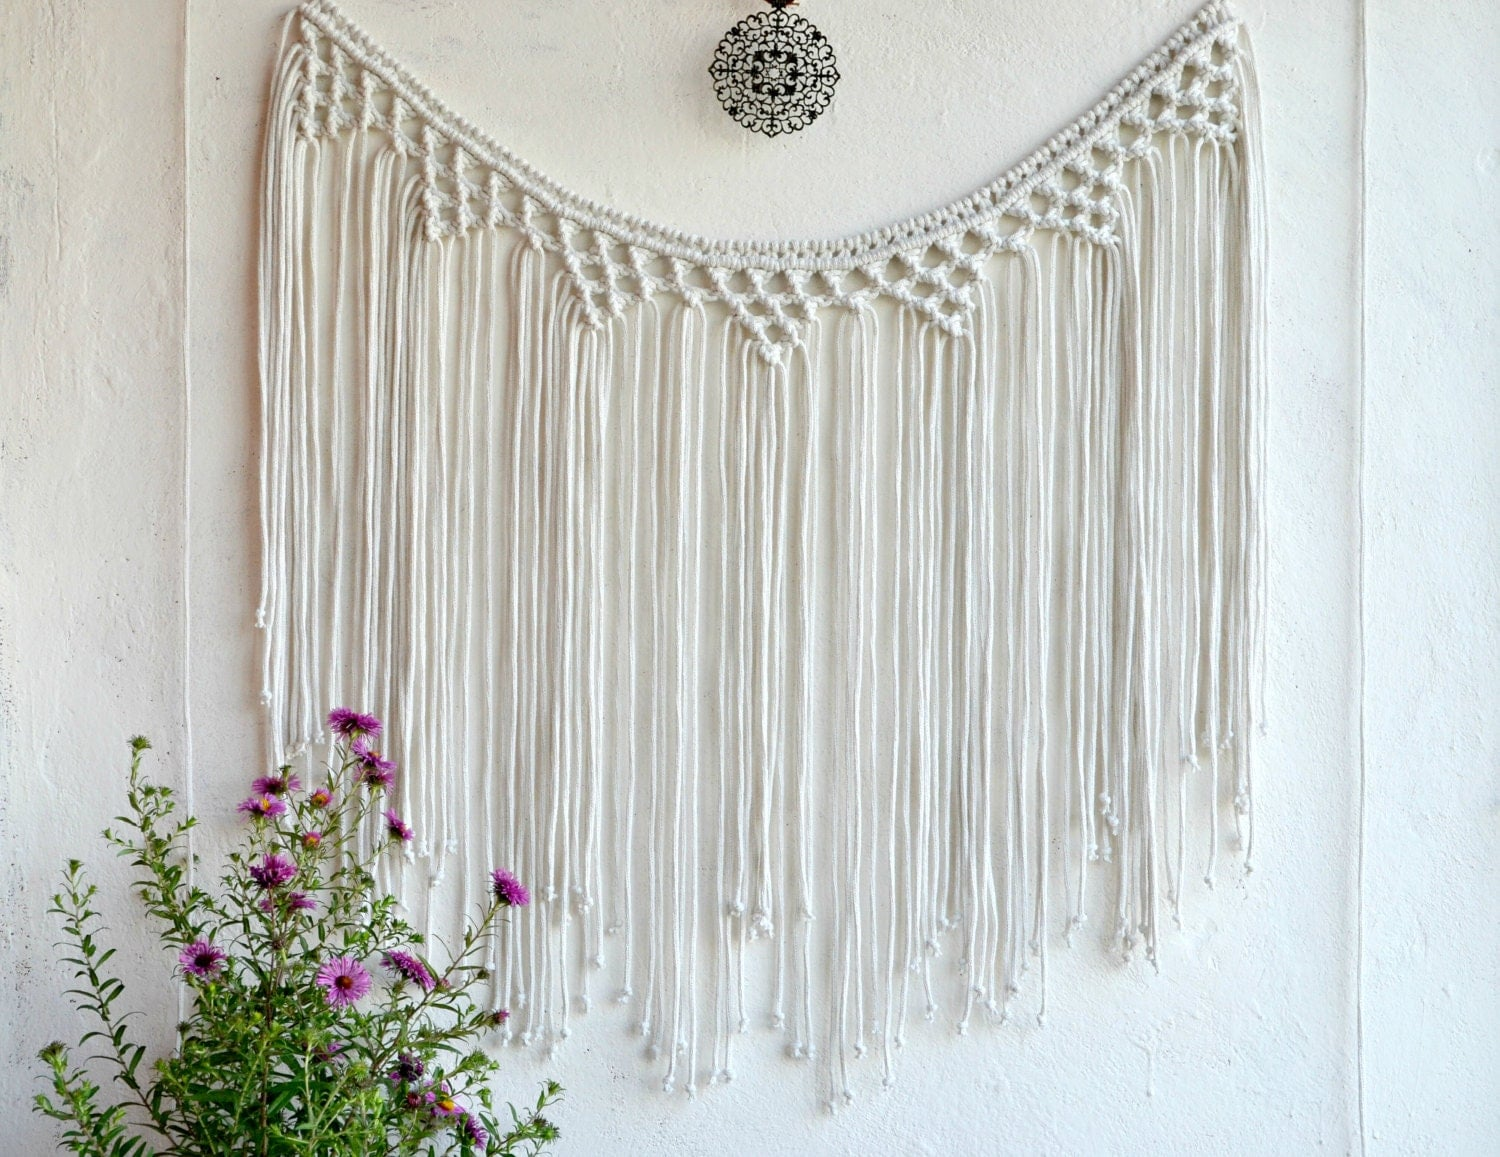 Open window with curtains blowing - Macrame Wall Hanging Fiber Wall Art Macrame Curtain Bohemian Wall Tapestry Banner Macrame Boho Backdrop Macrame Garland